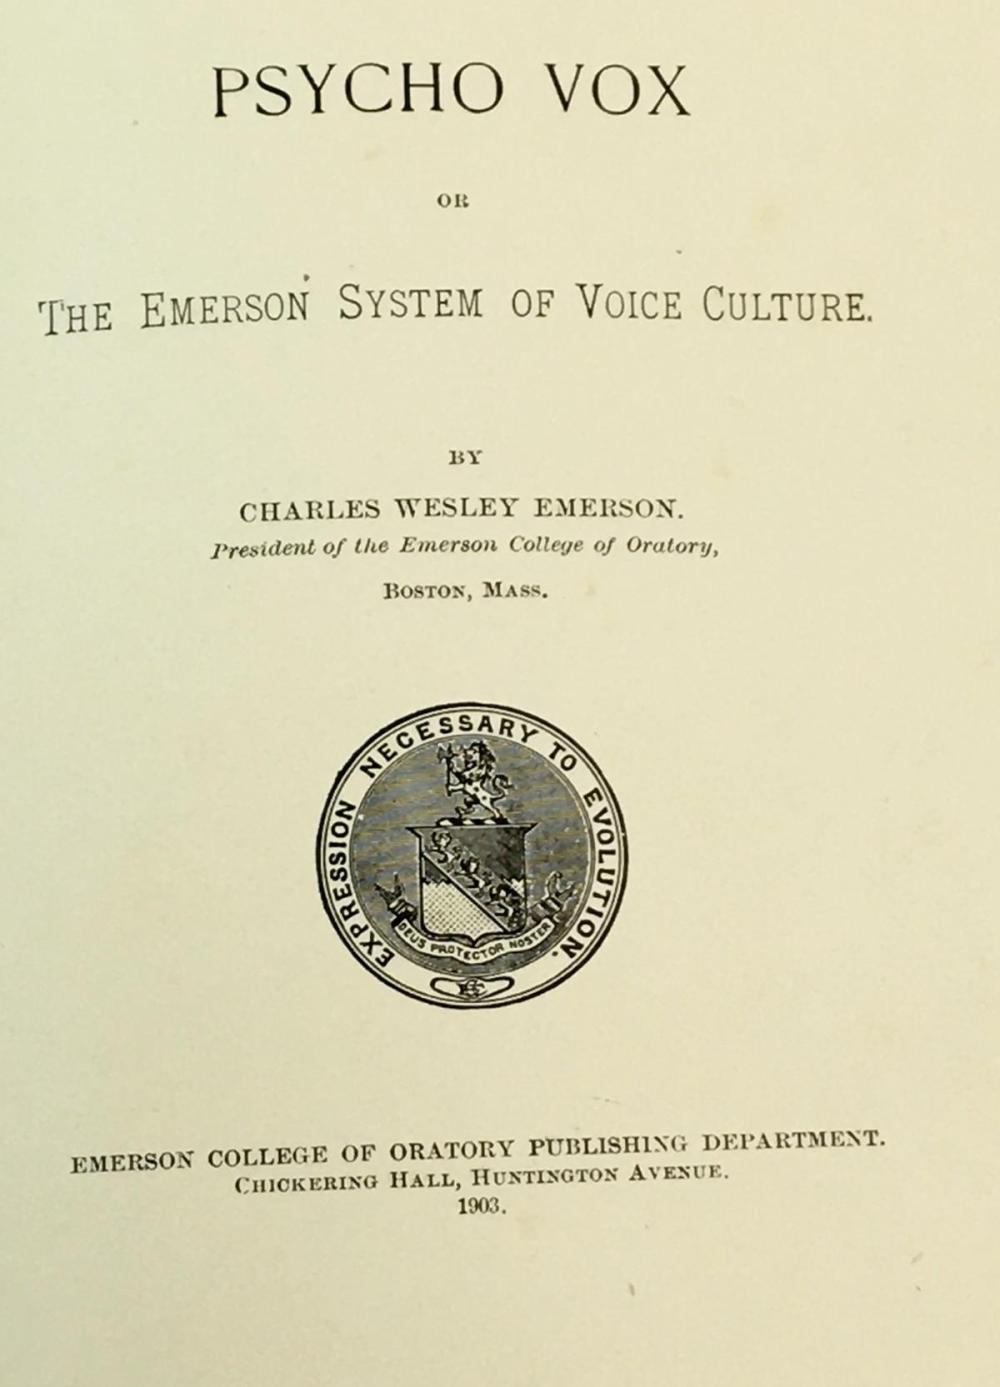 1903 Voice Culture: Psycho Vox Emerson College of Oratory by Charles Wesley Emerson